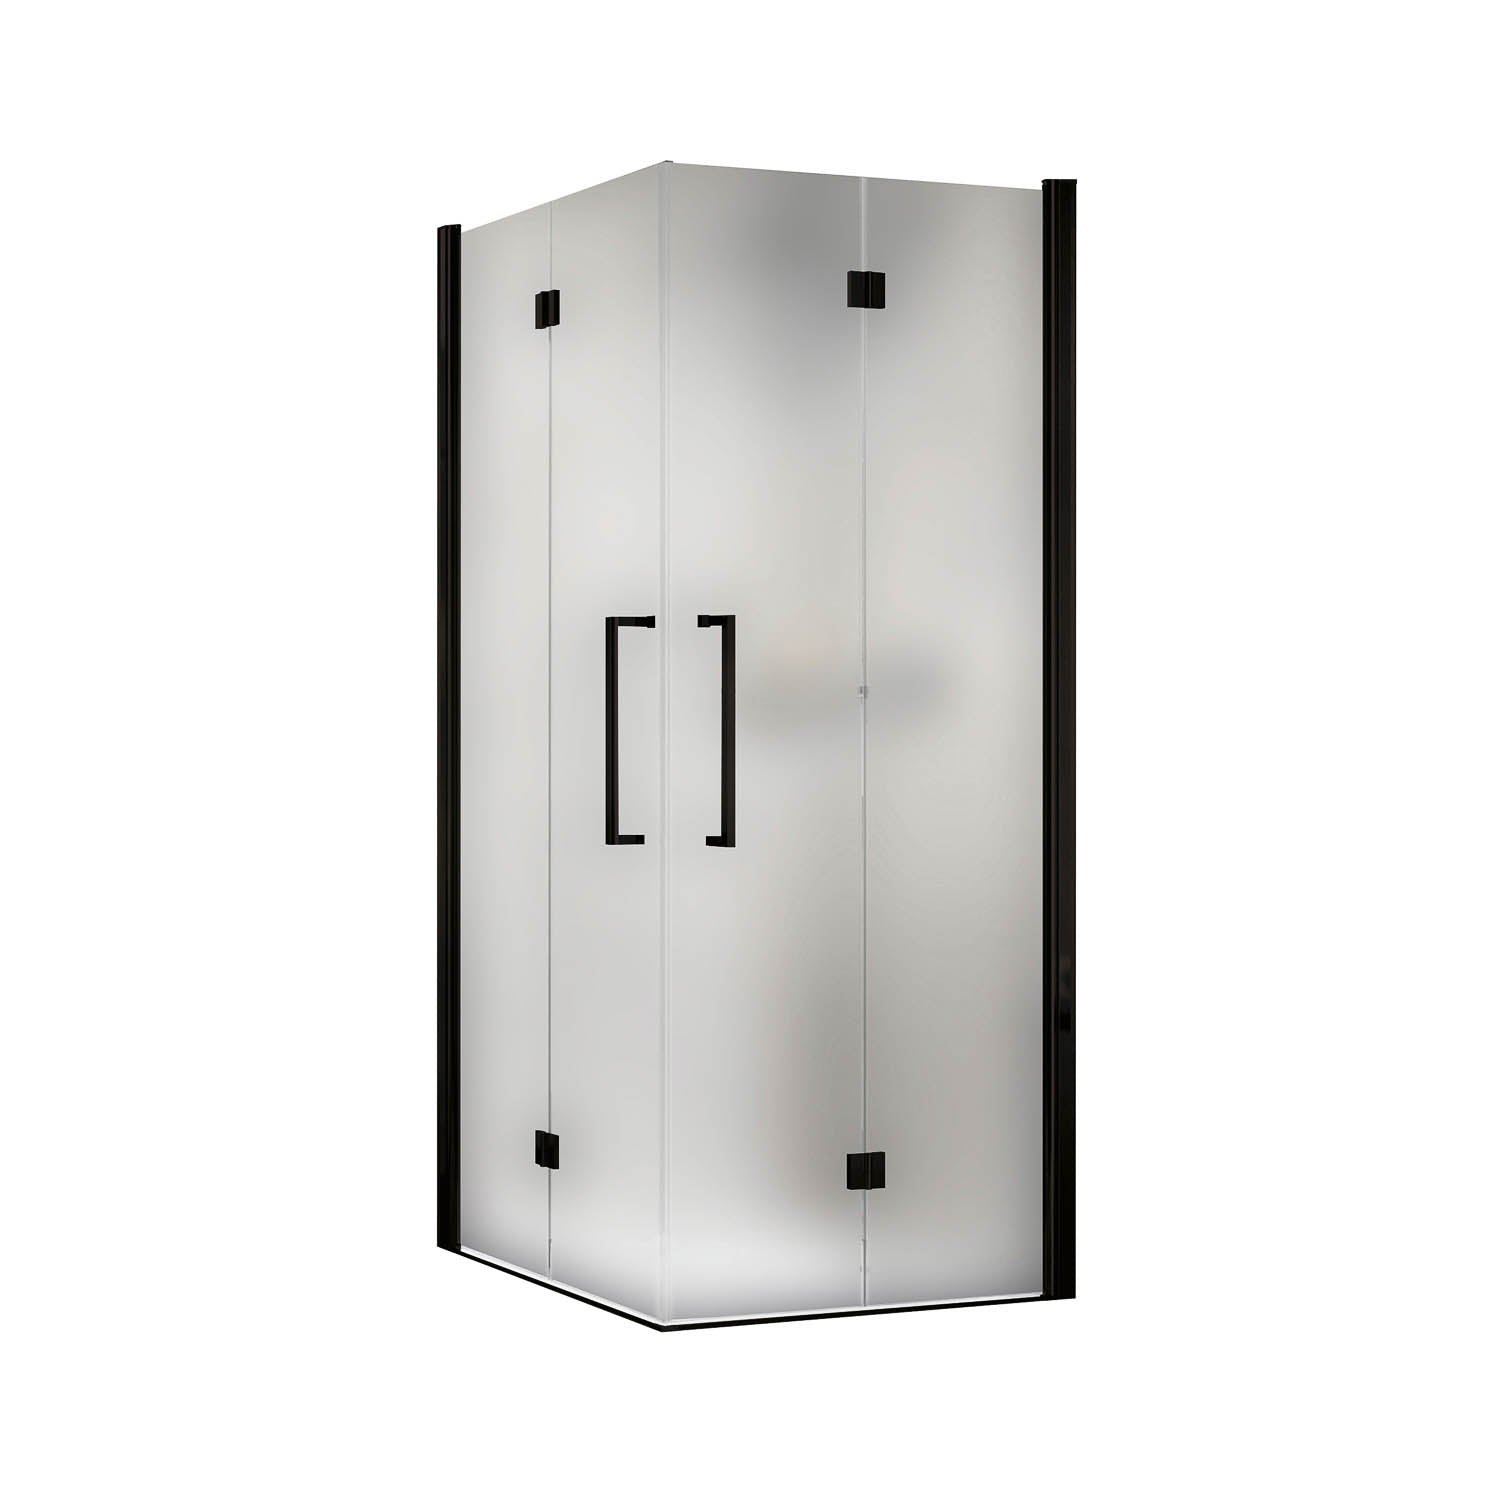 890-910mm Bliss Bi-folding Screen Frosted Glass with a matt black finish on a white background